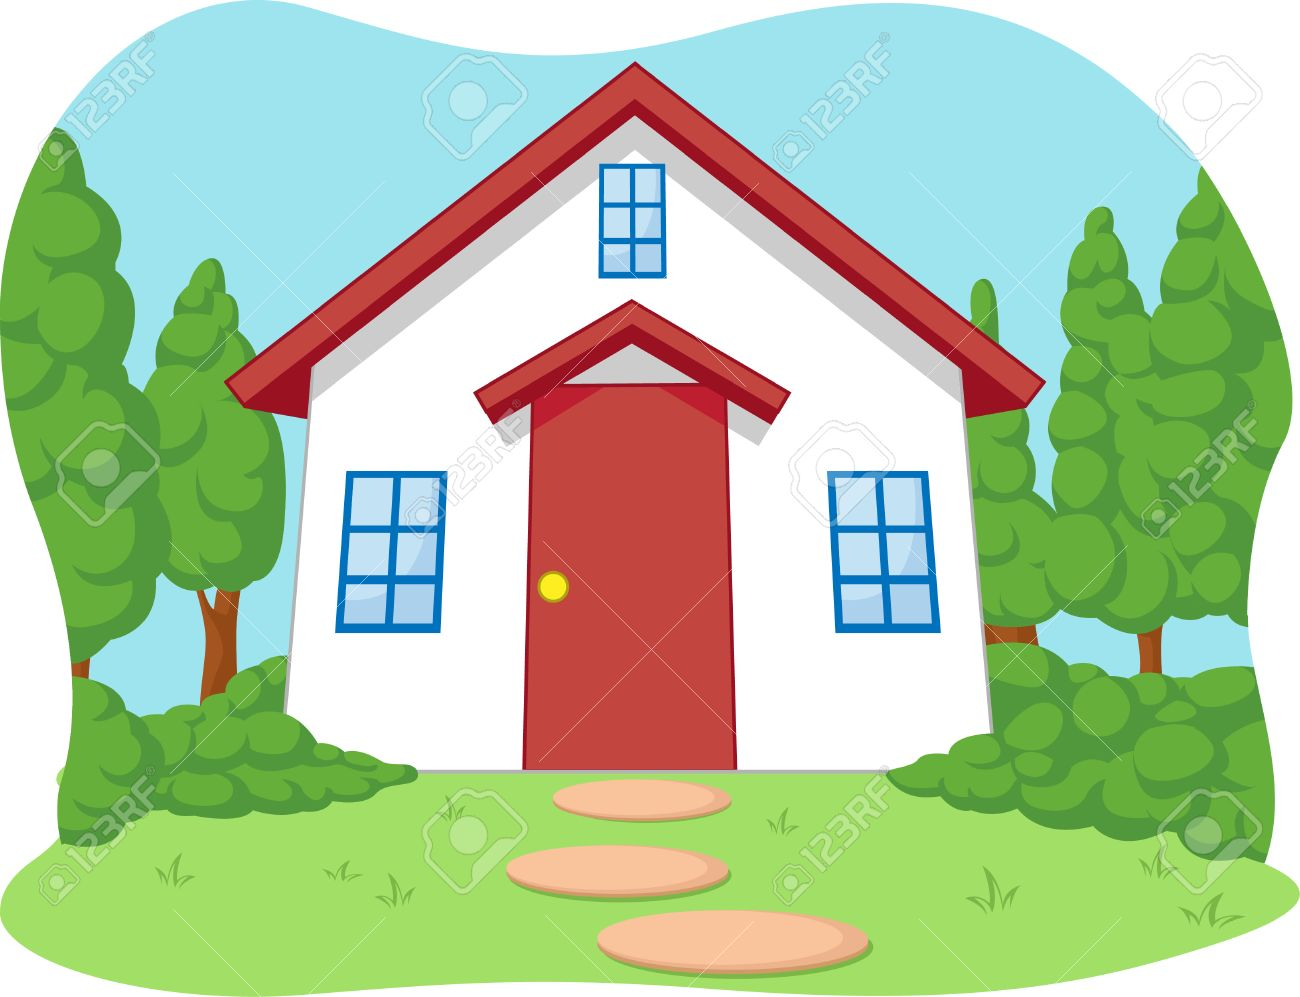 Cute House Cartoon Cartoon of Cute Little House